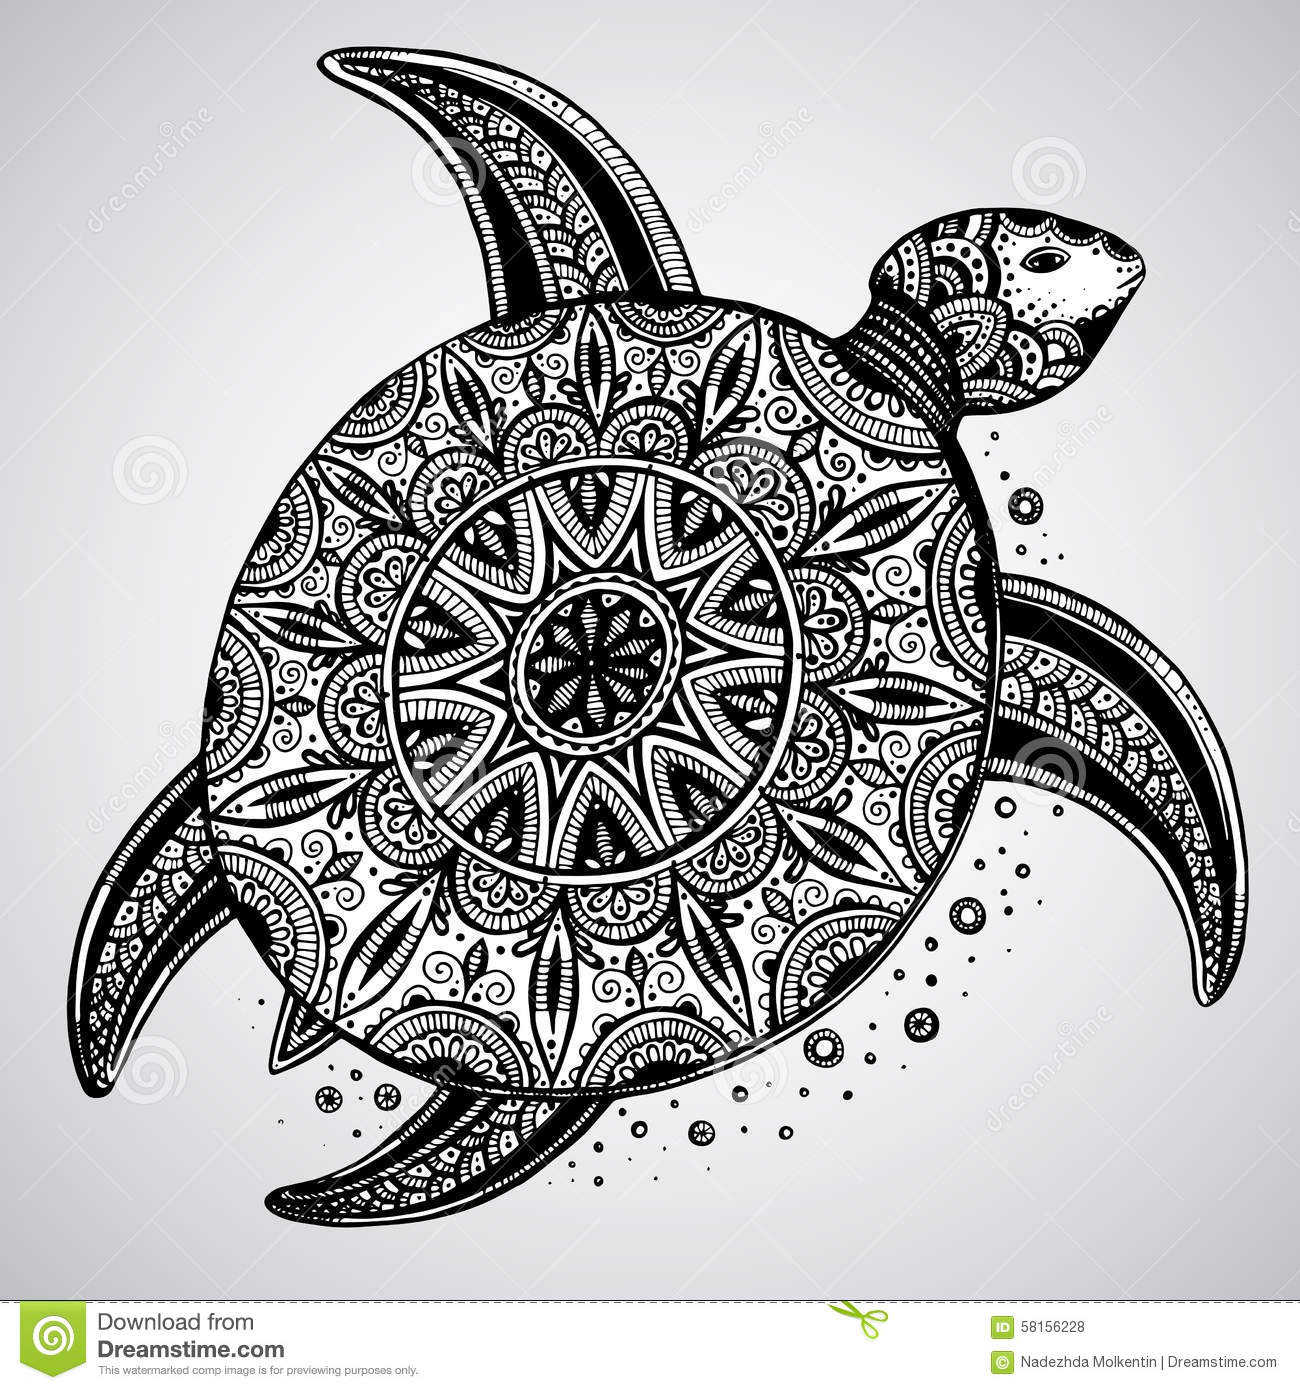 calavera mejicana con lazo 2 furthermore  furthermore  also  moreover  further  together with  furthermore  besides  further  additionally . on fish coloring pages hard mandala